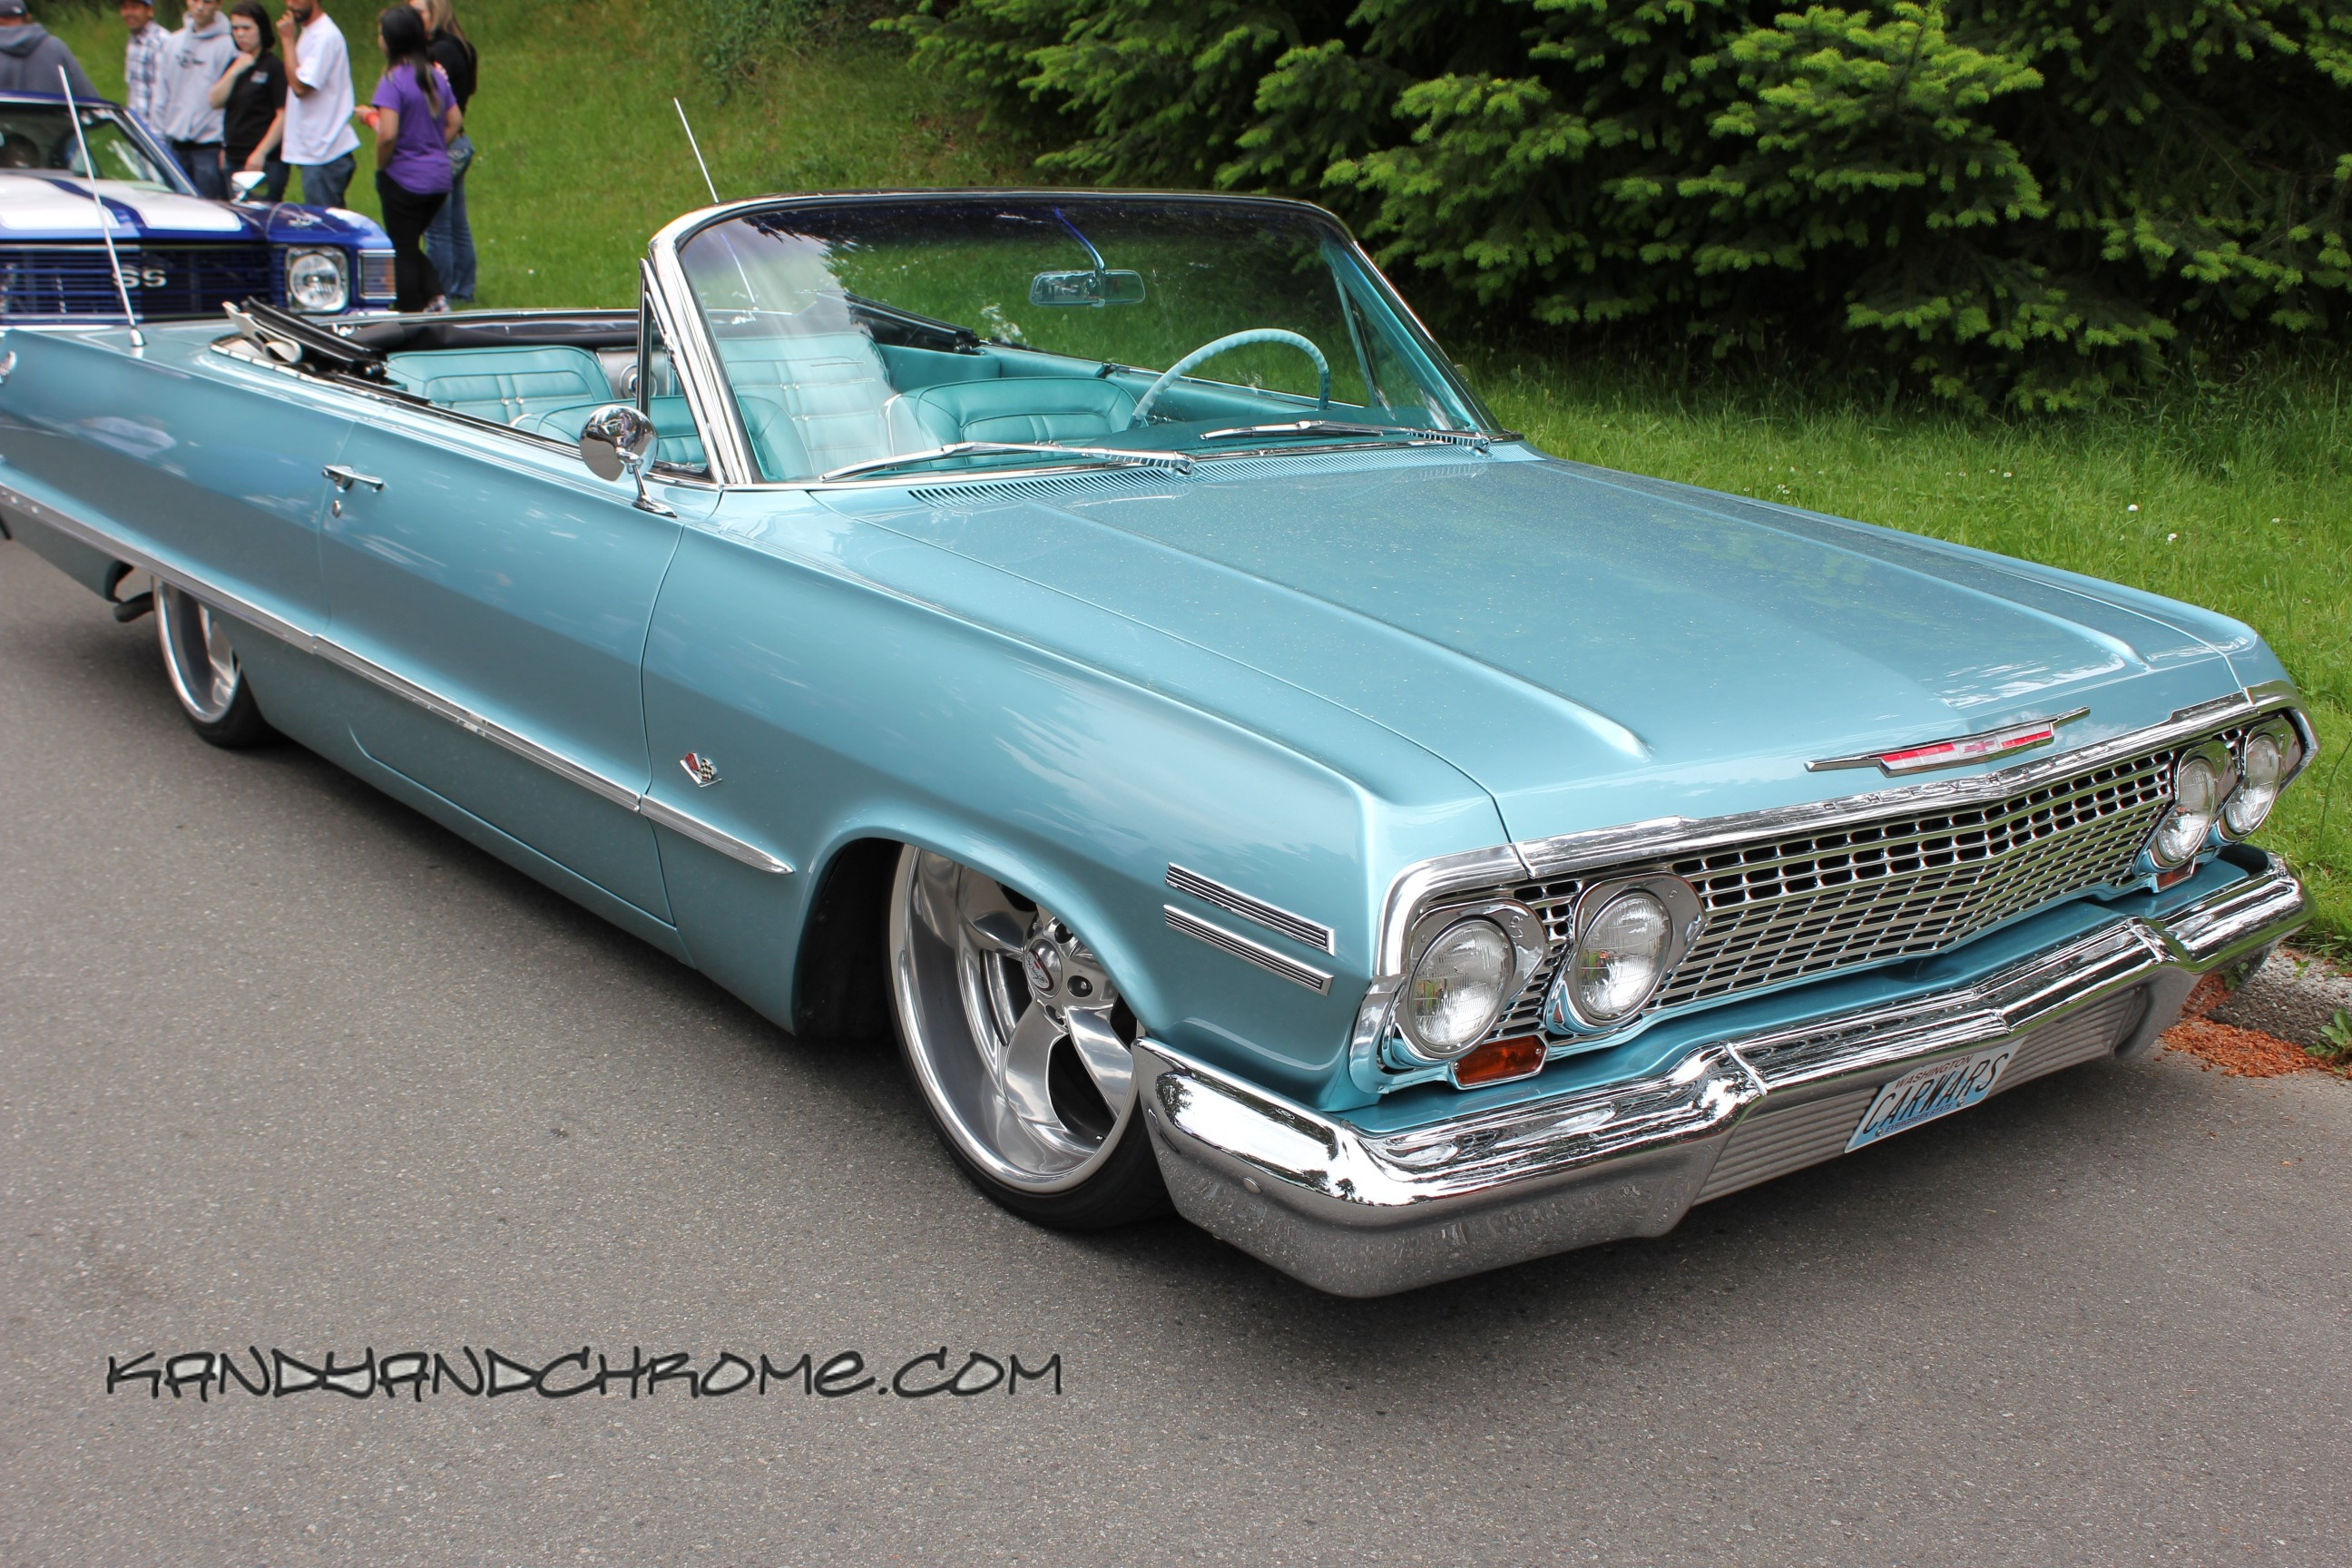 560290-amazing-lowrider-car-wallpaper-2592x1728.jpg